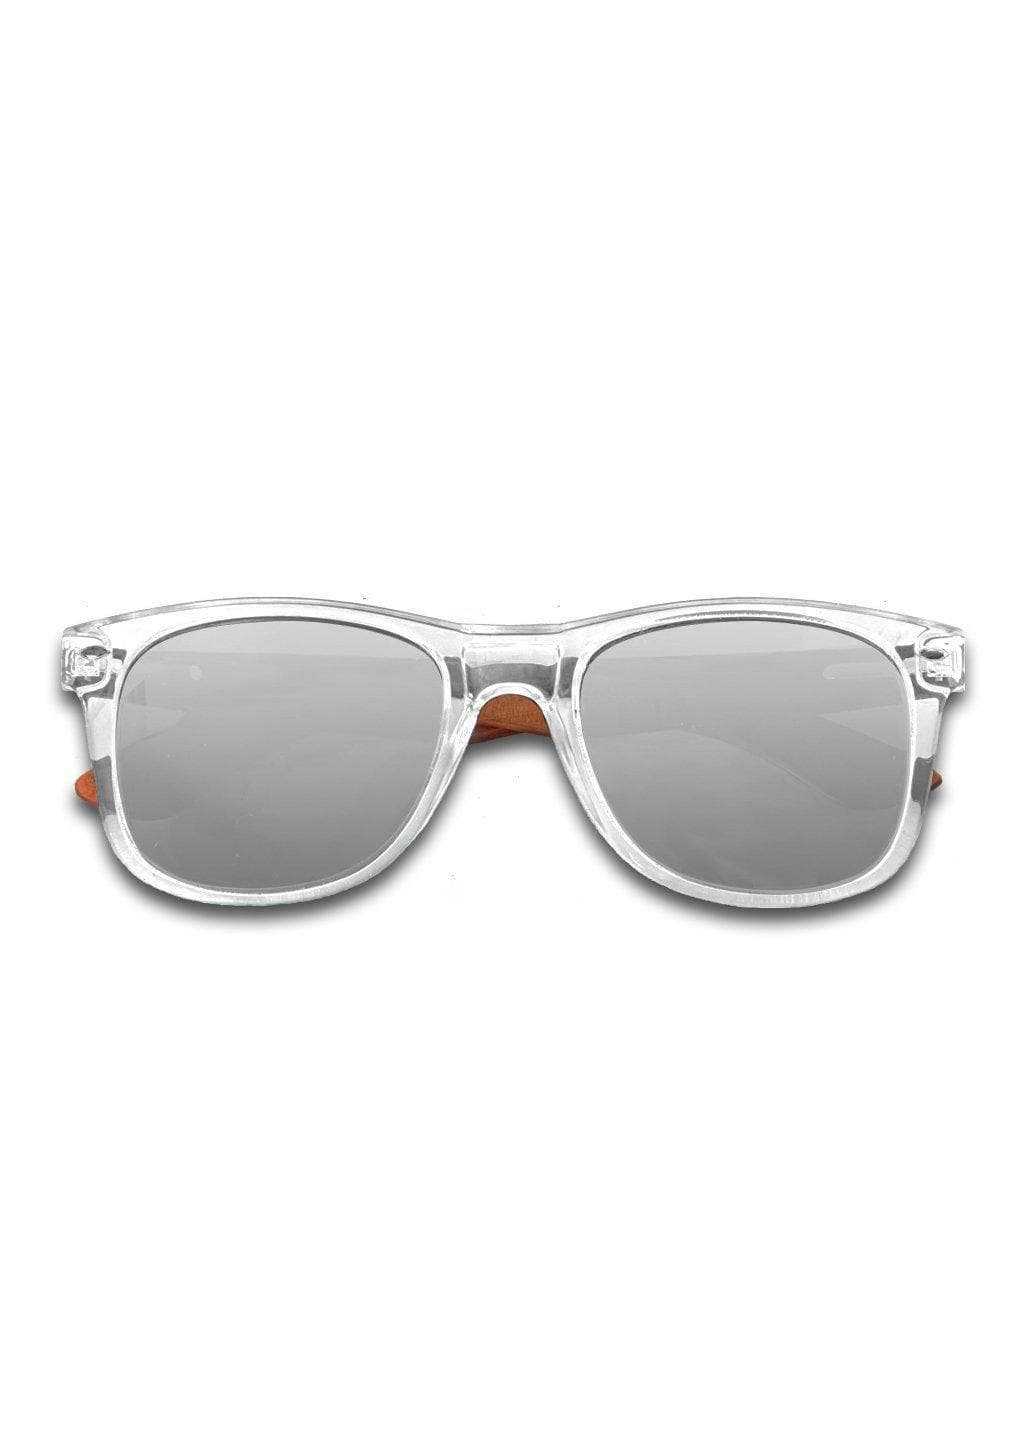 Eyewood Wayfarer - Crystal - Transparent frame with silver mirror lenses.